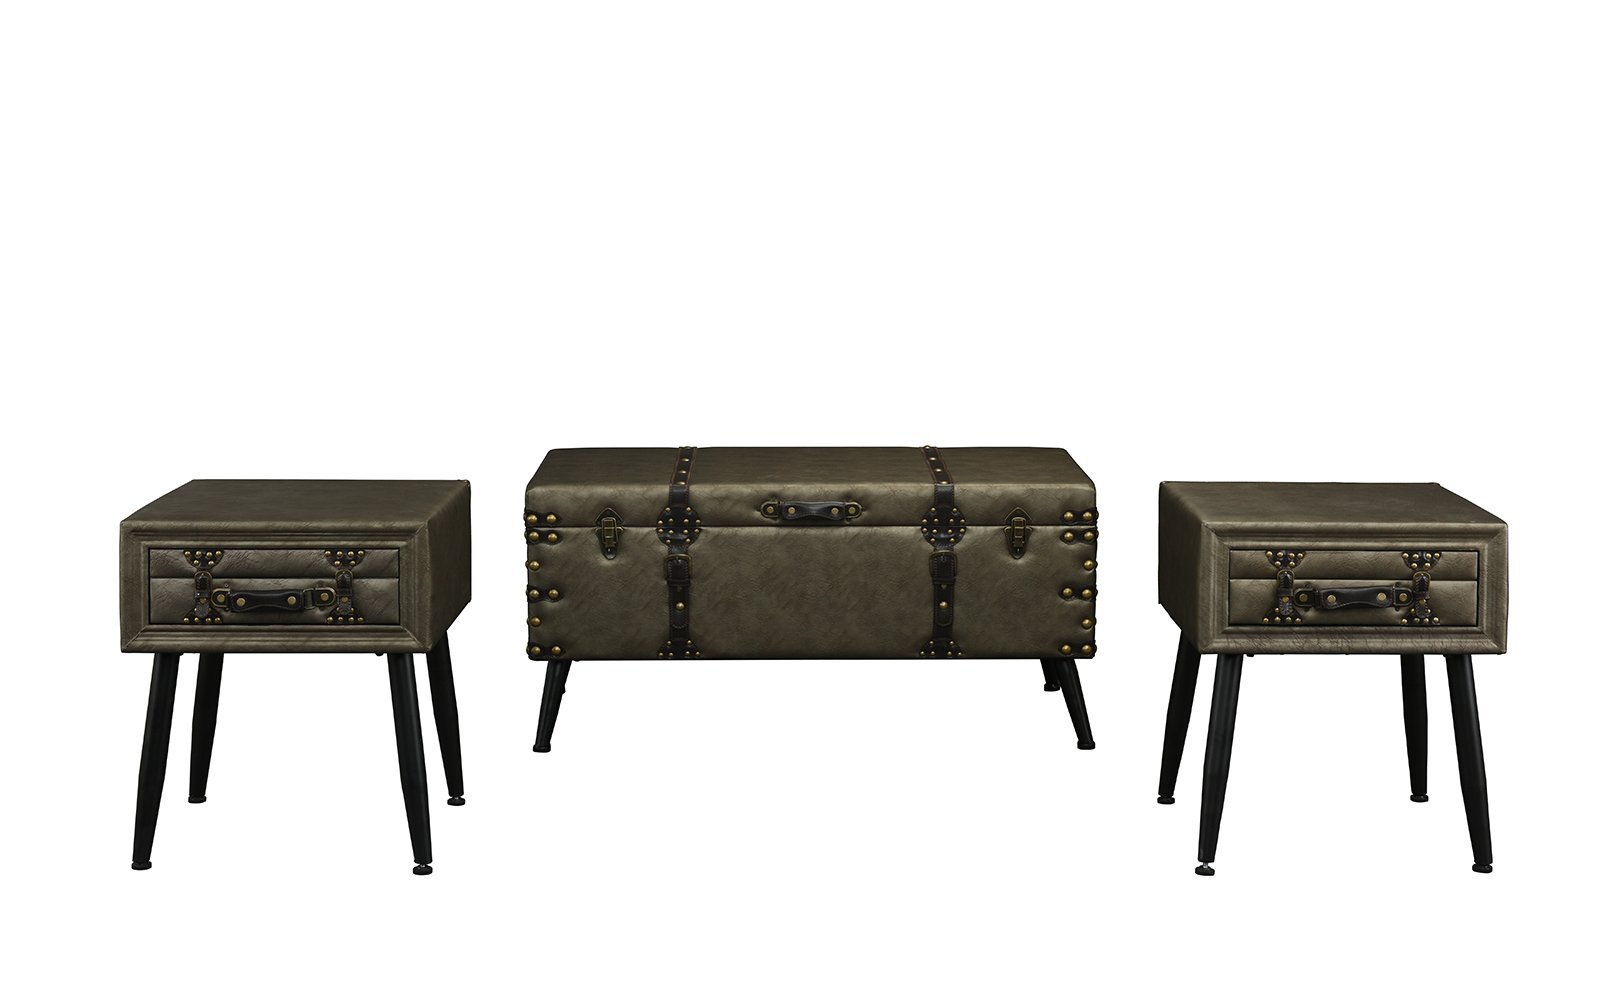 averie piece faux leather storage chest accent table set gry drinks cooler black bedside with drawers glass gold legs luau cupcakes grey farmhouse home interior accessories barn